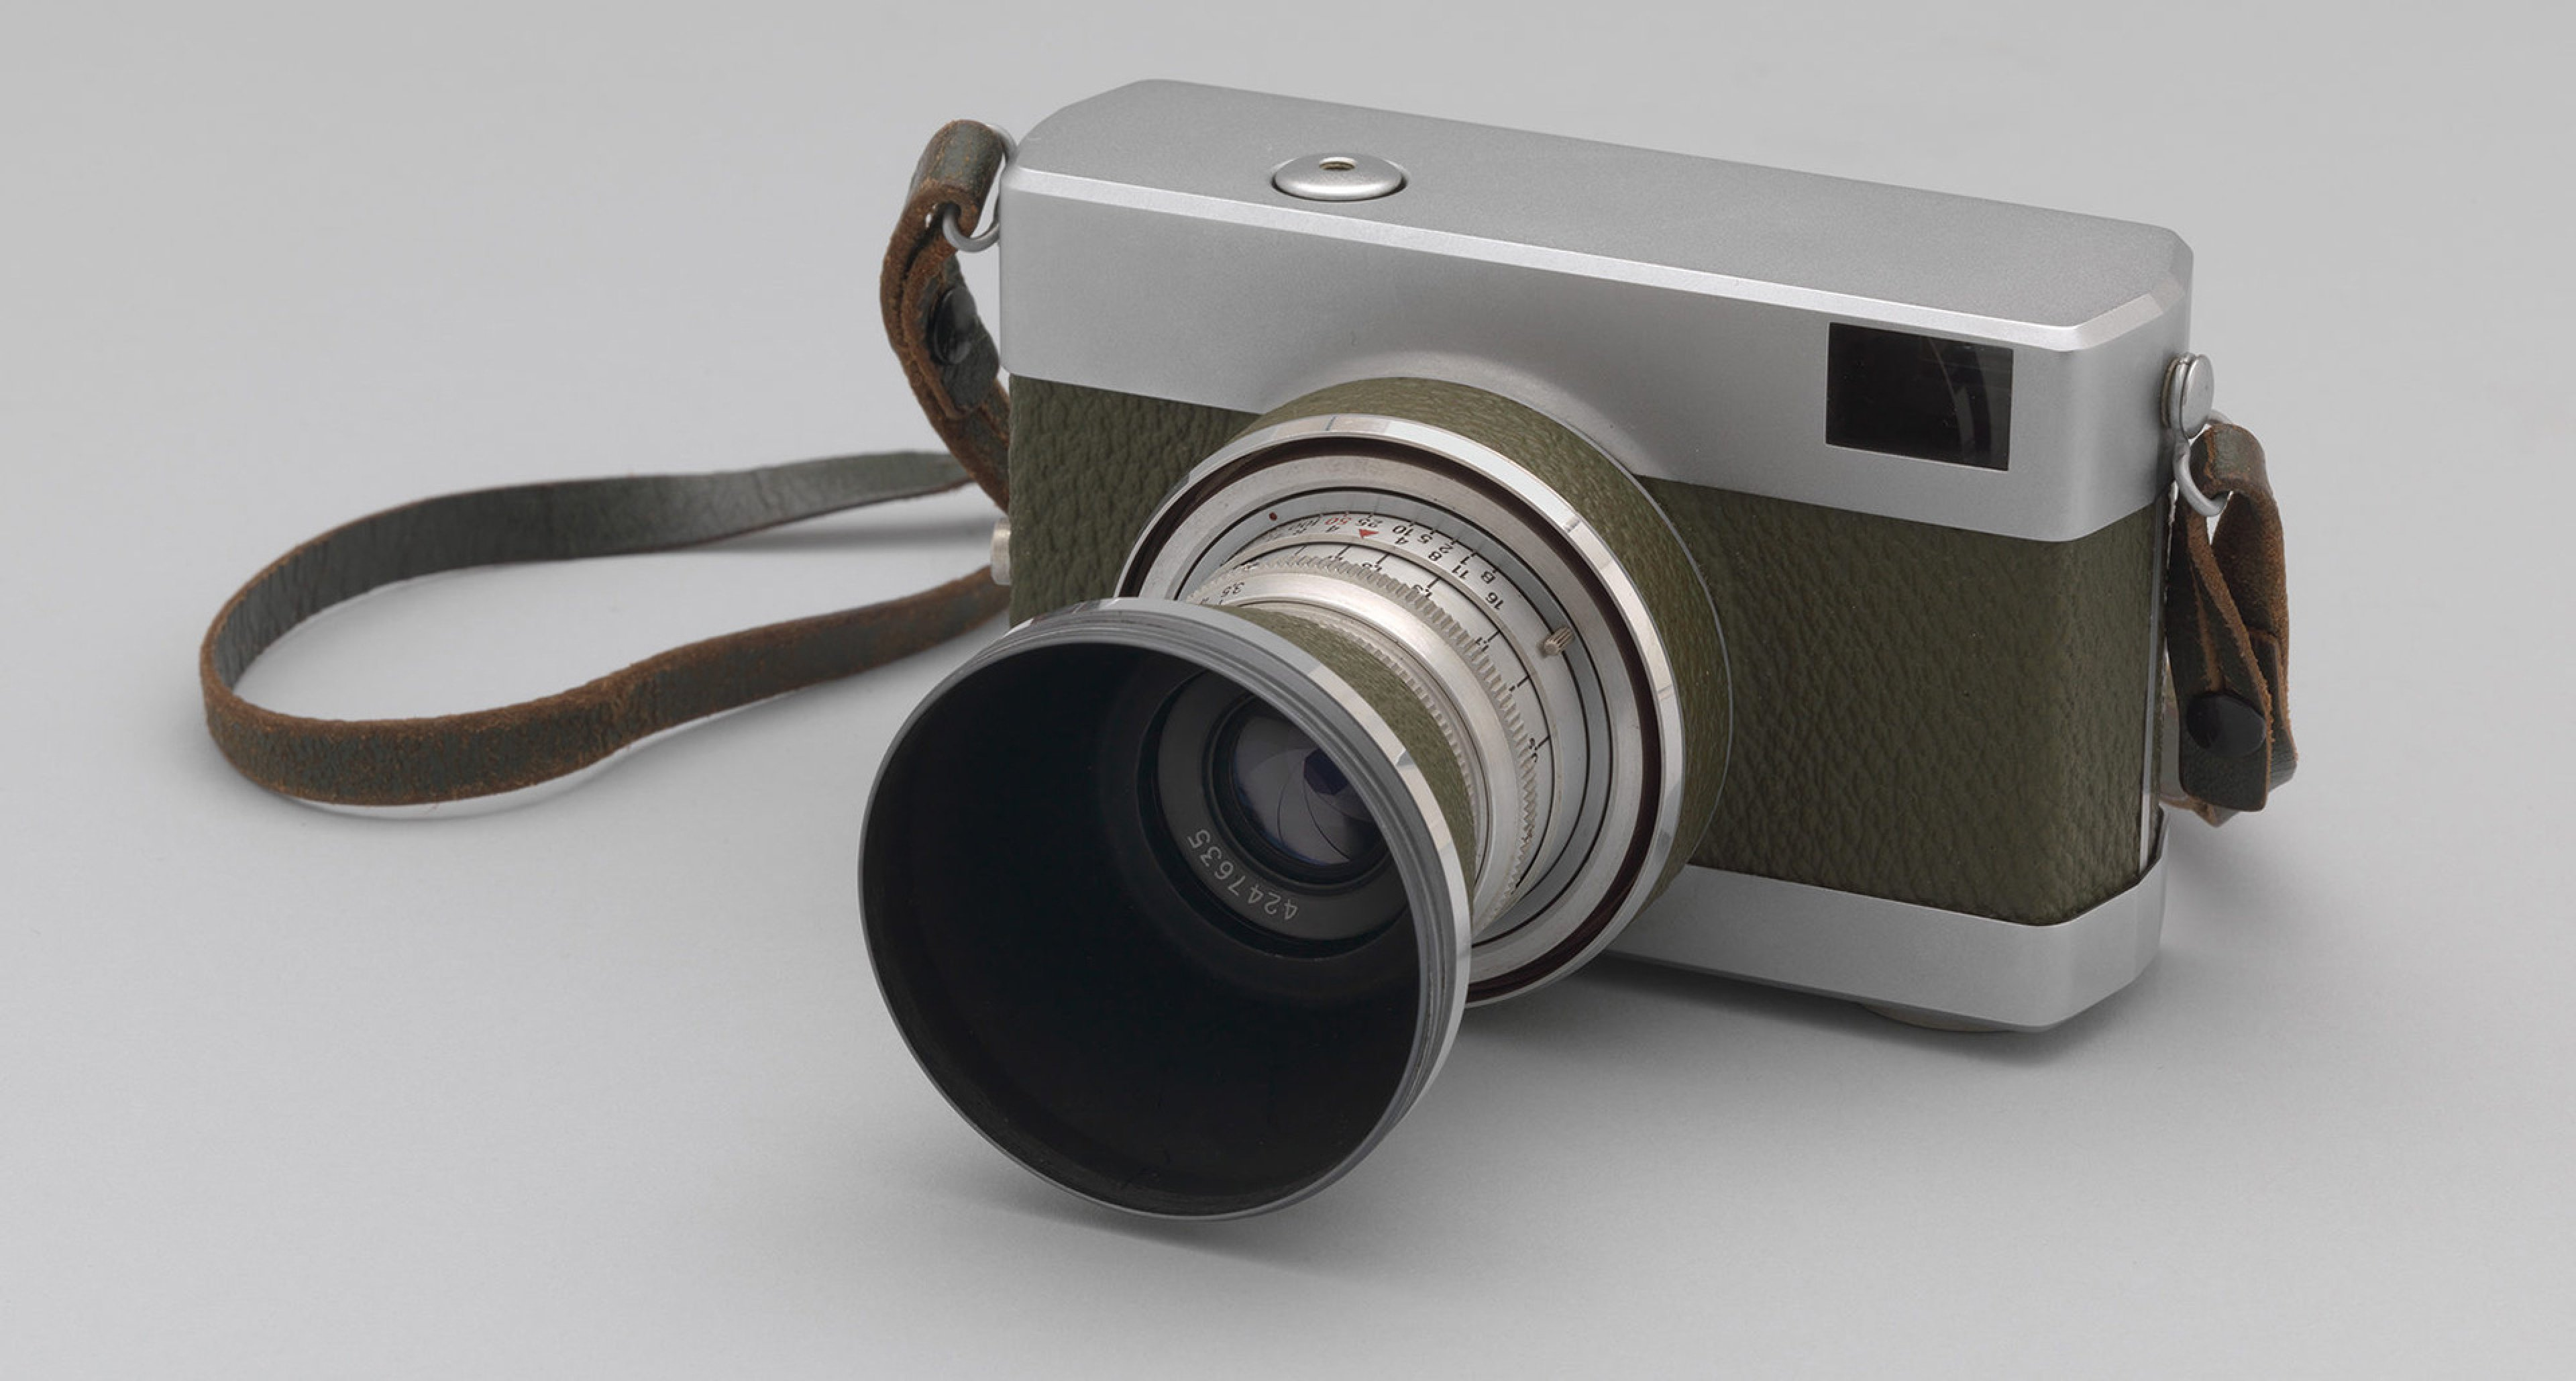 Zeiss-Werk (Jena, East Germany/DDR). Werra 1 35mm film camera. c. 1955–60. Aluminum body with vulcanite surface, 3 × 4 1/2 × 2 1/2″ (7.6 × 11.4 × 6.4 cm). The Museum of Modern Art, New York. Gift of Michael Maharam. Photo by Thomas Griesel © The Museum of